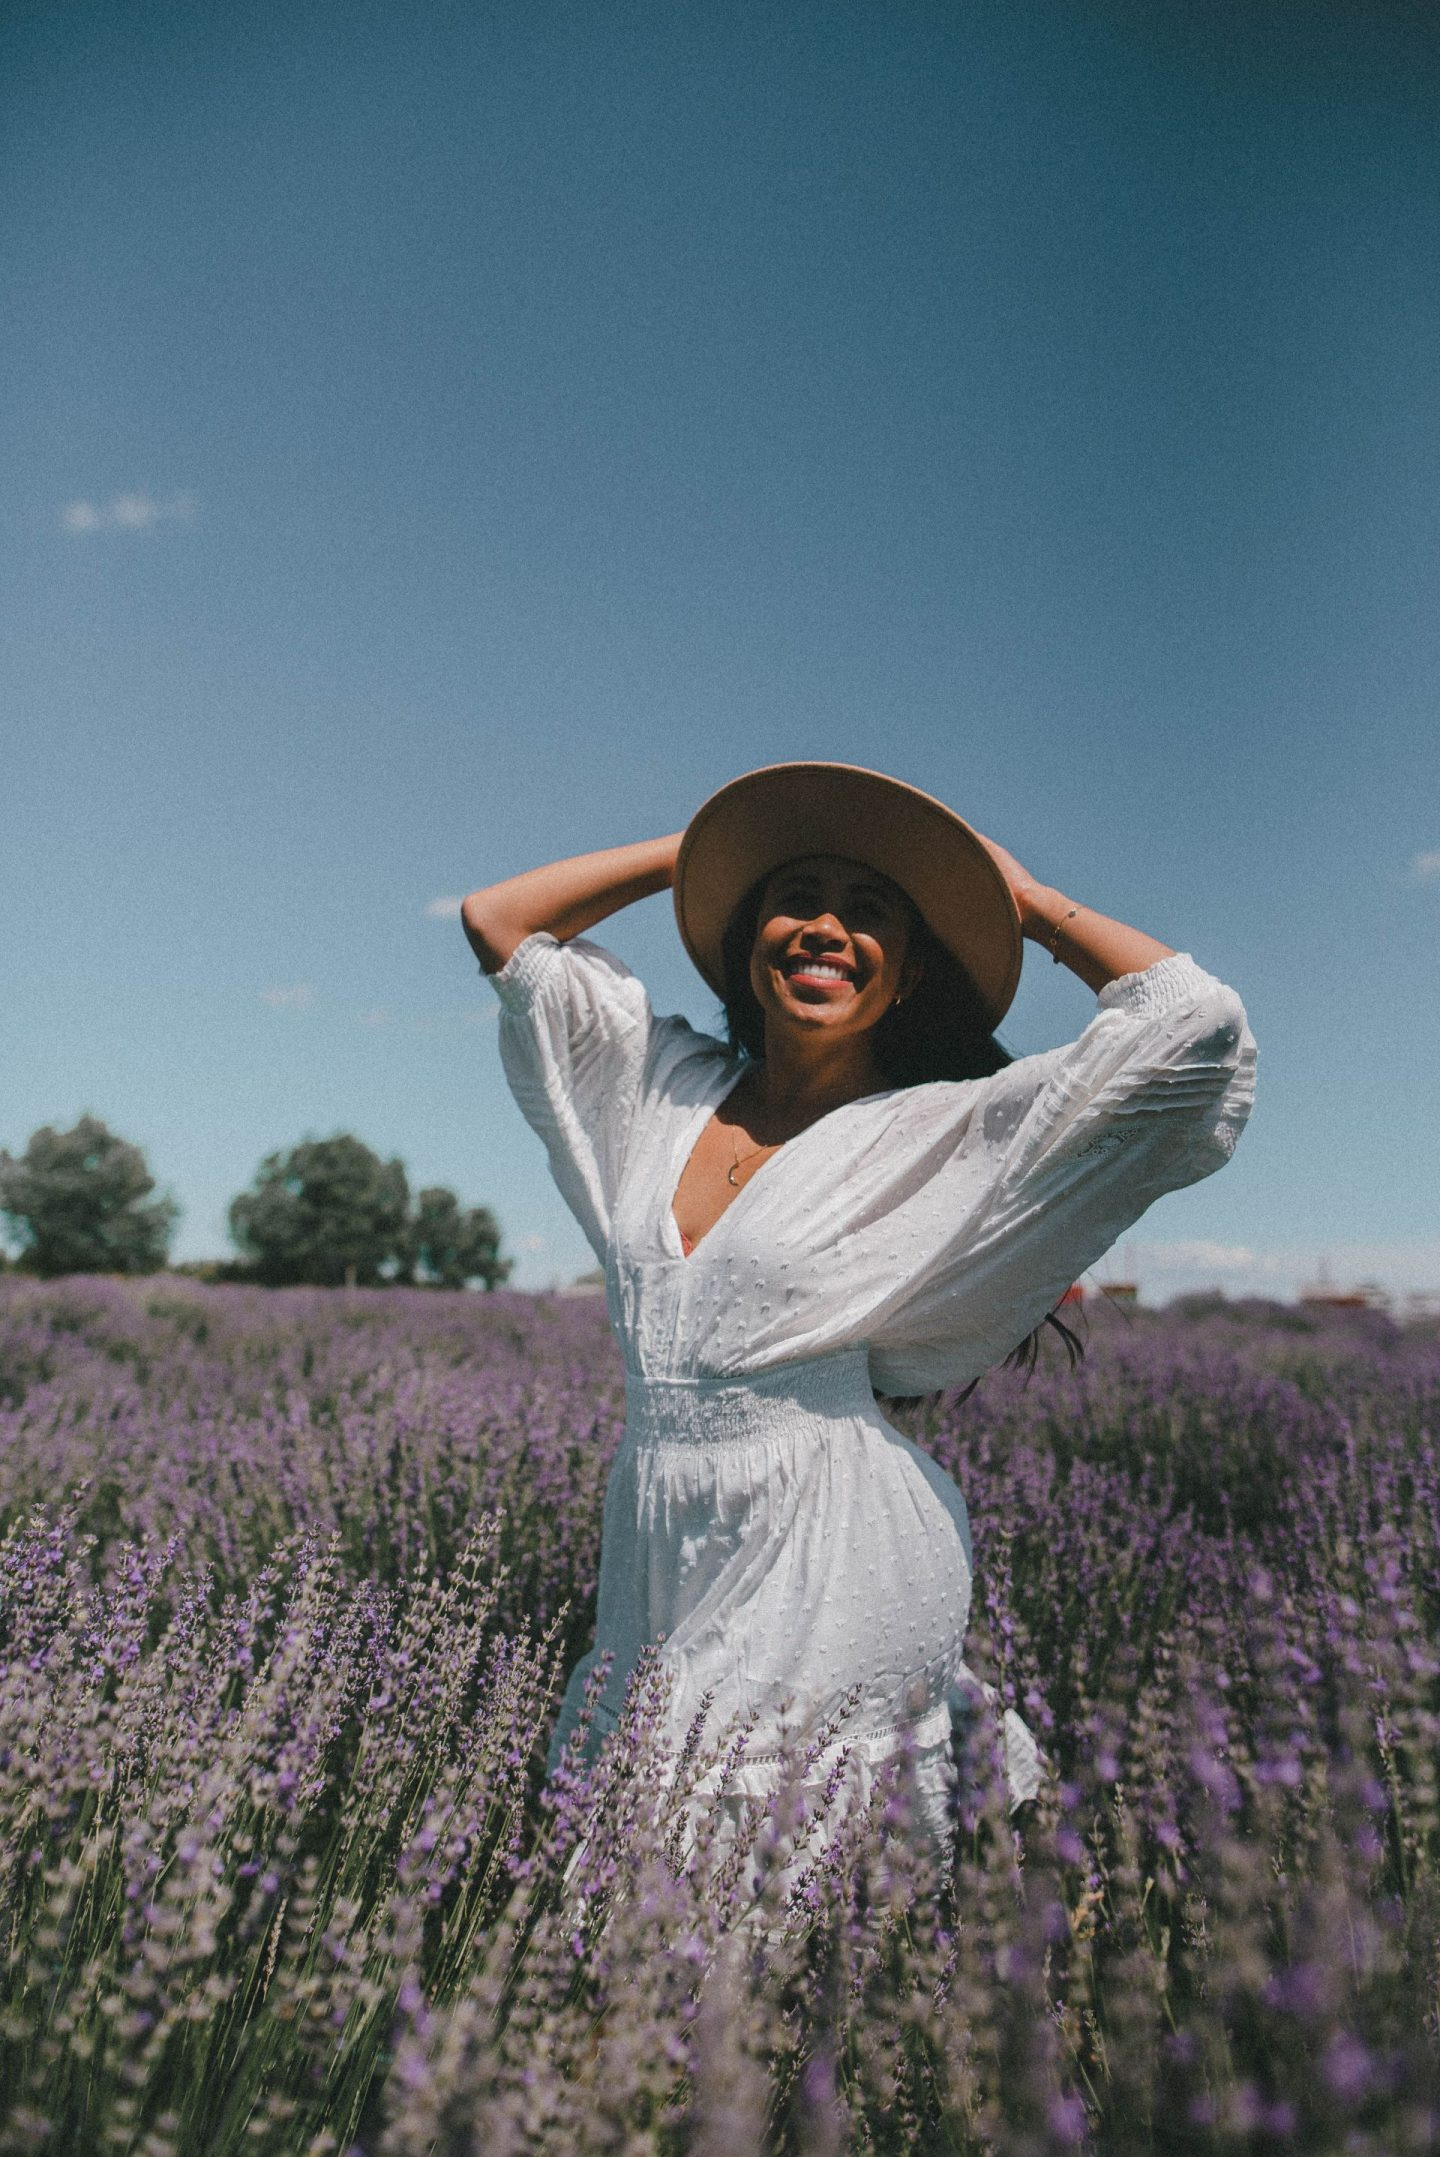 Love Stitch Clothing - Lavender field aesthetic – lavender field photo shoot outfit – lavender field – lavender field dress – Emma's Edition – things to do in Eastern Washington – Explore Washington State - Seattle blogger – Eastern Washington – Quincy Washington